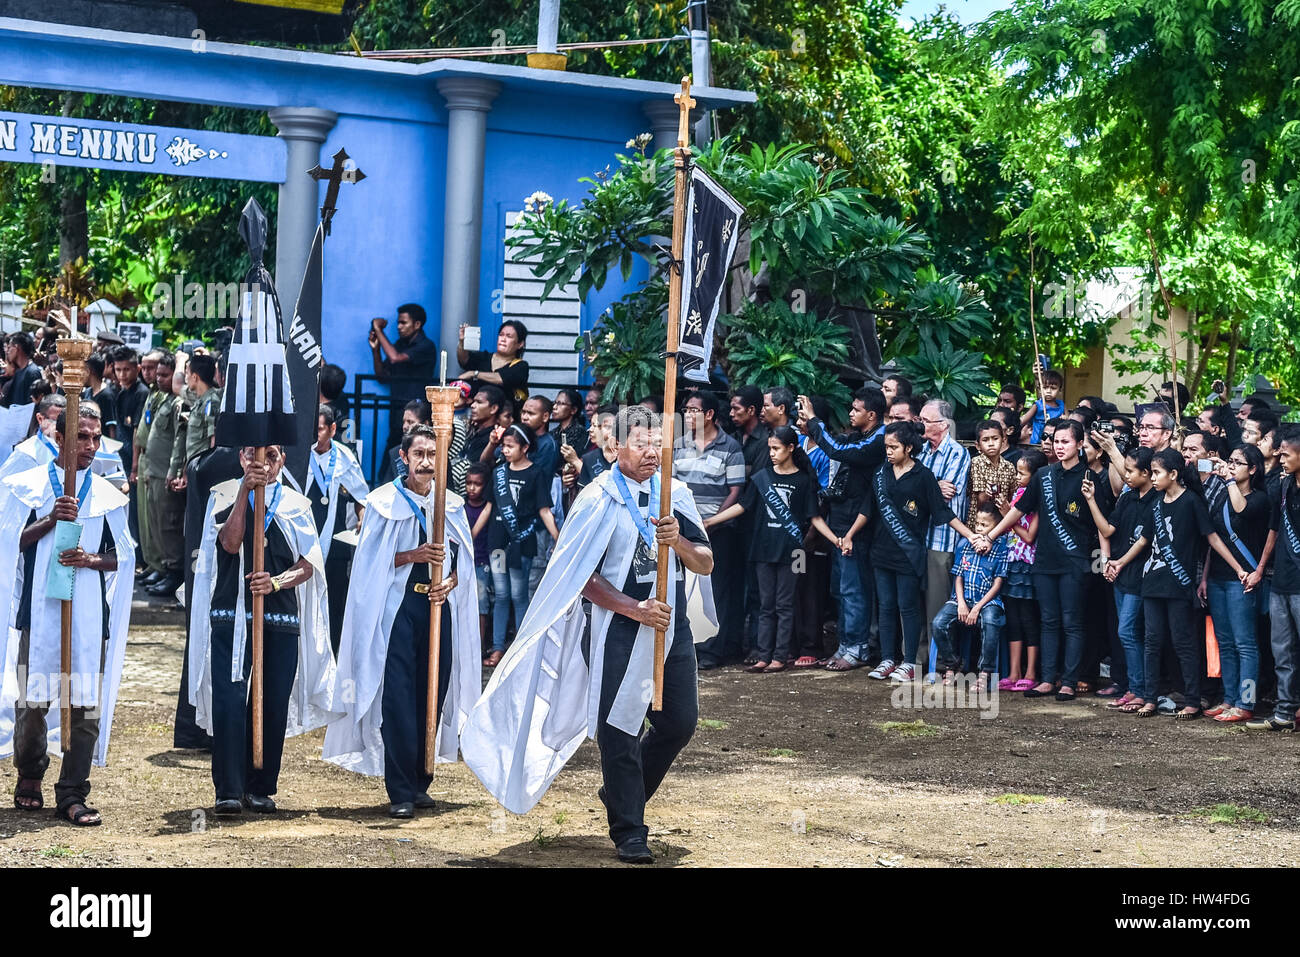 The elders of a local Roman Chatolic chapel march in a Holy Week procession in Larantuka town, Flores, Indonesia. Stock Photo